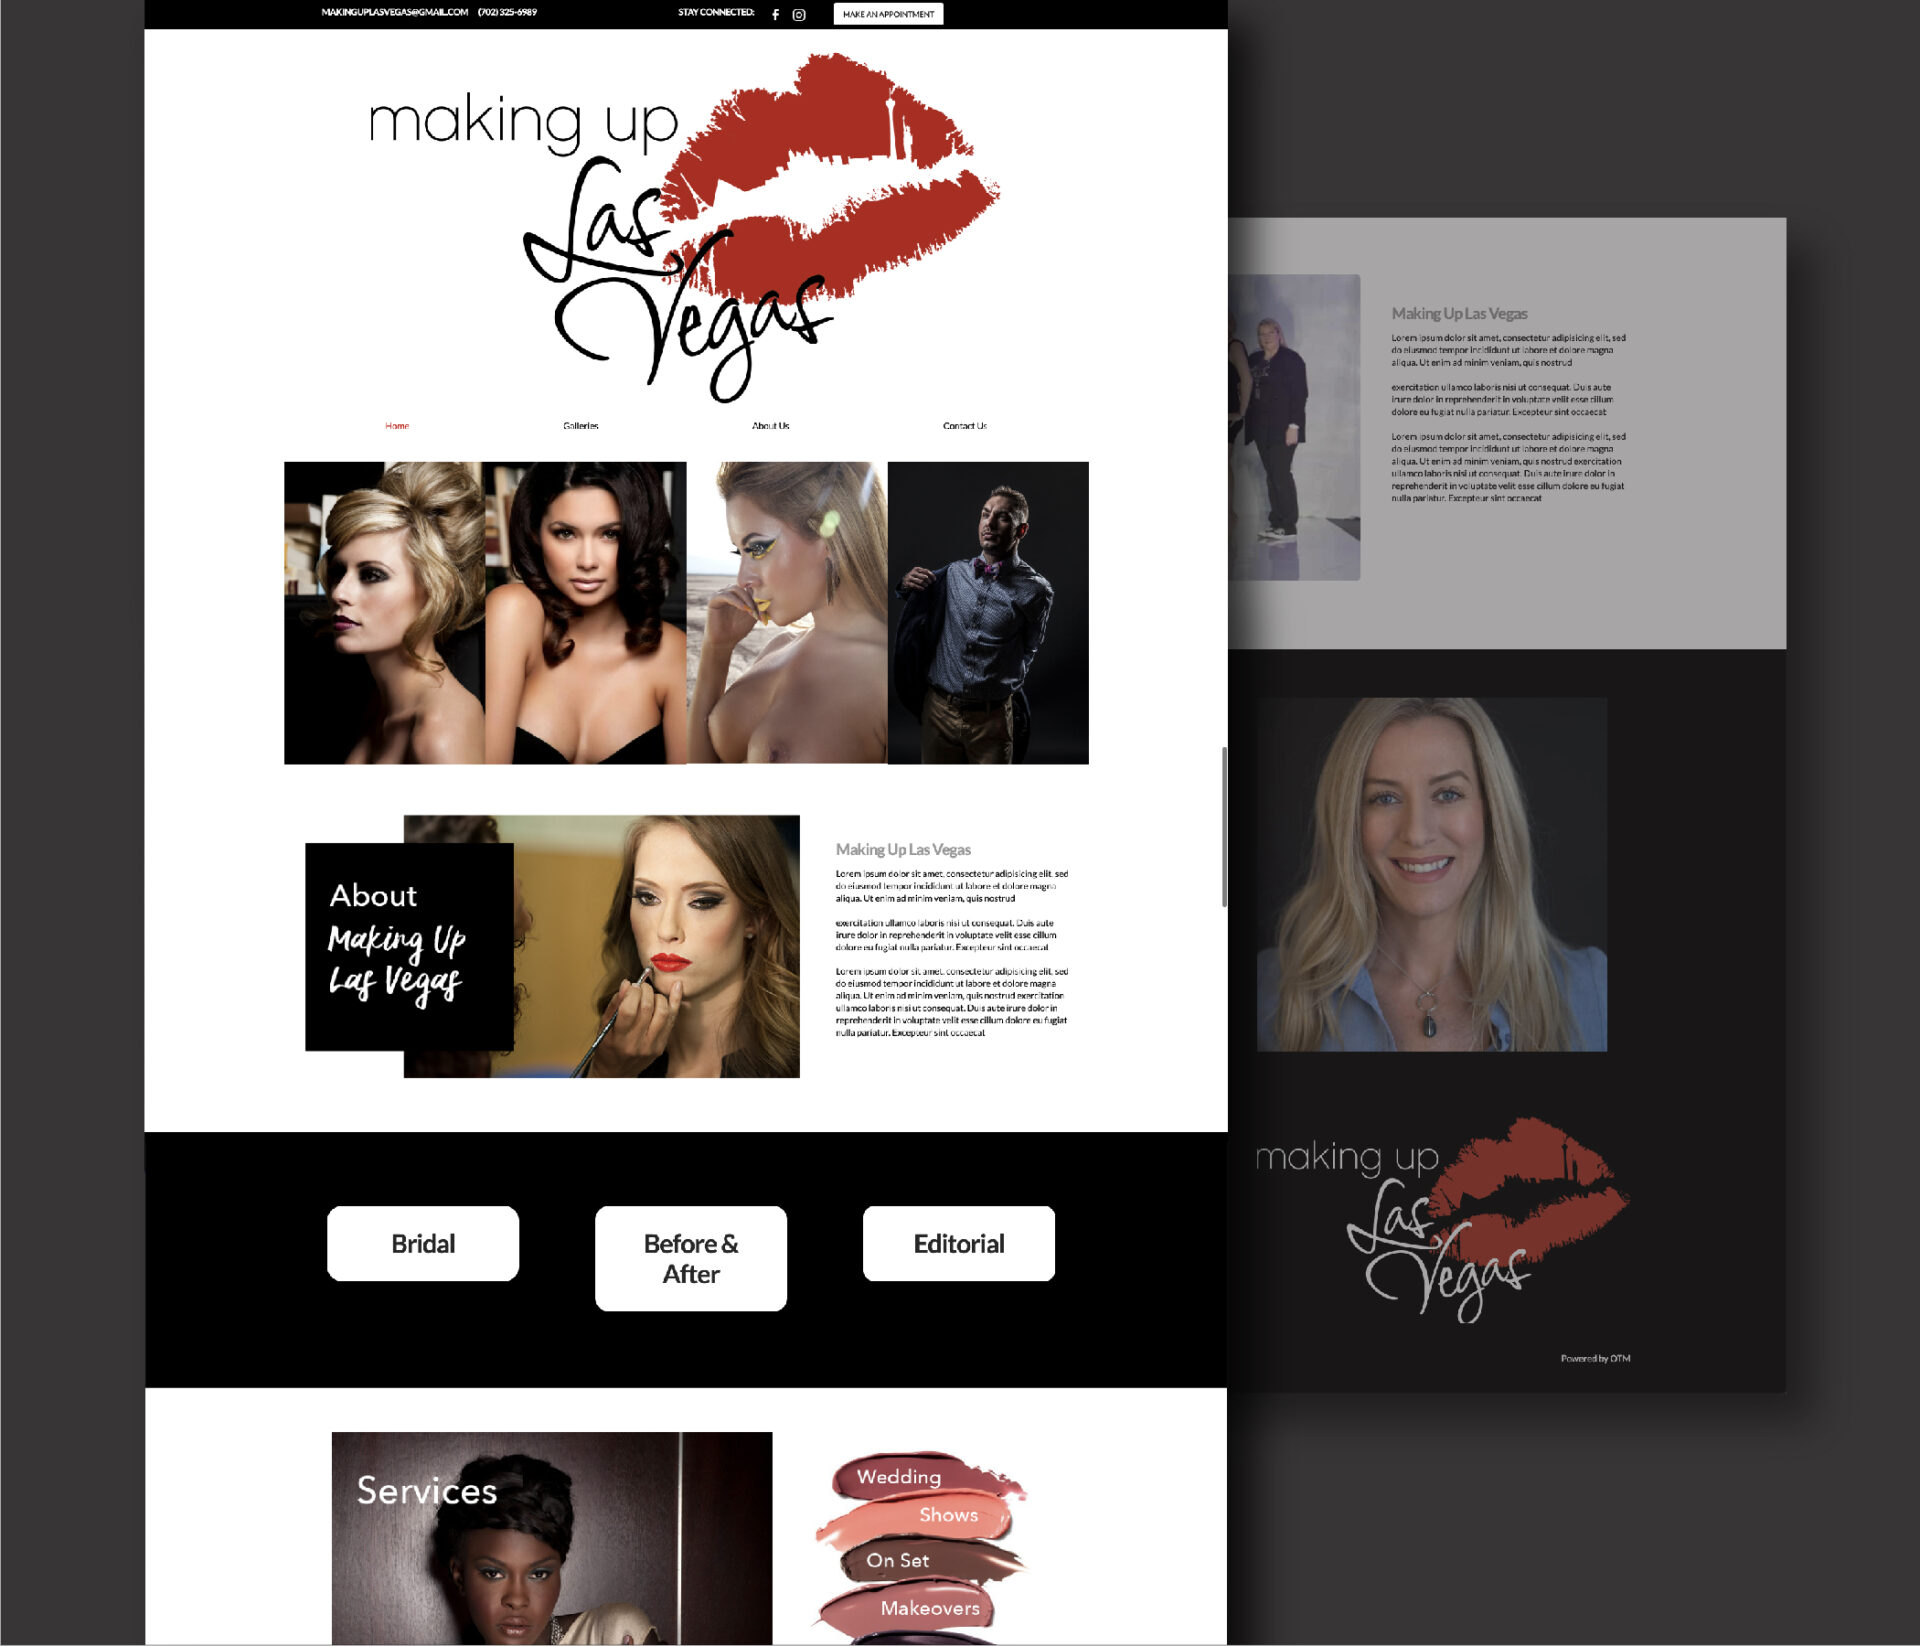 Making Up Las Vegas Website Design